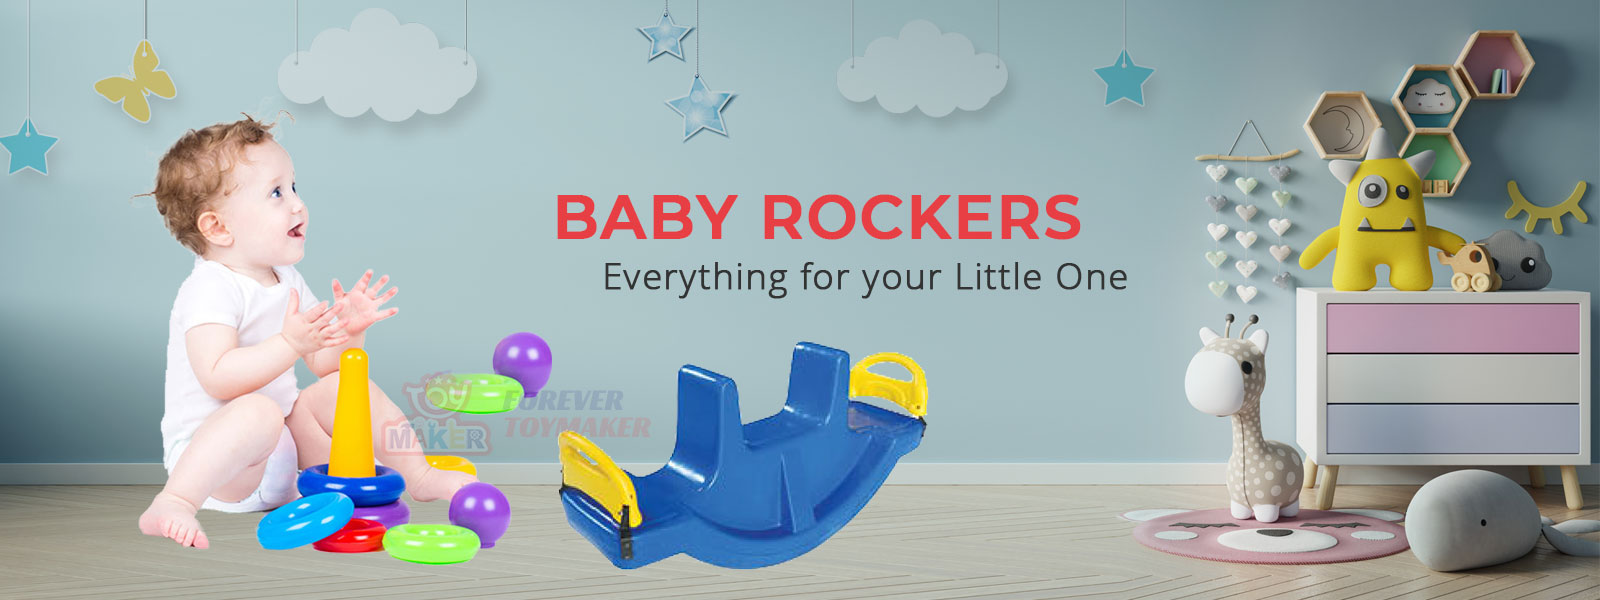 Baby Rockers Manufacturers in Solapur